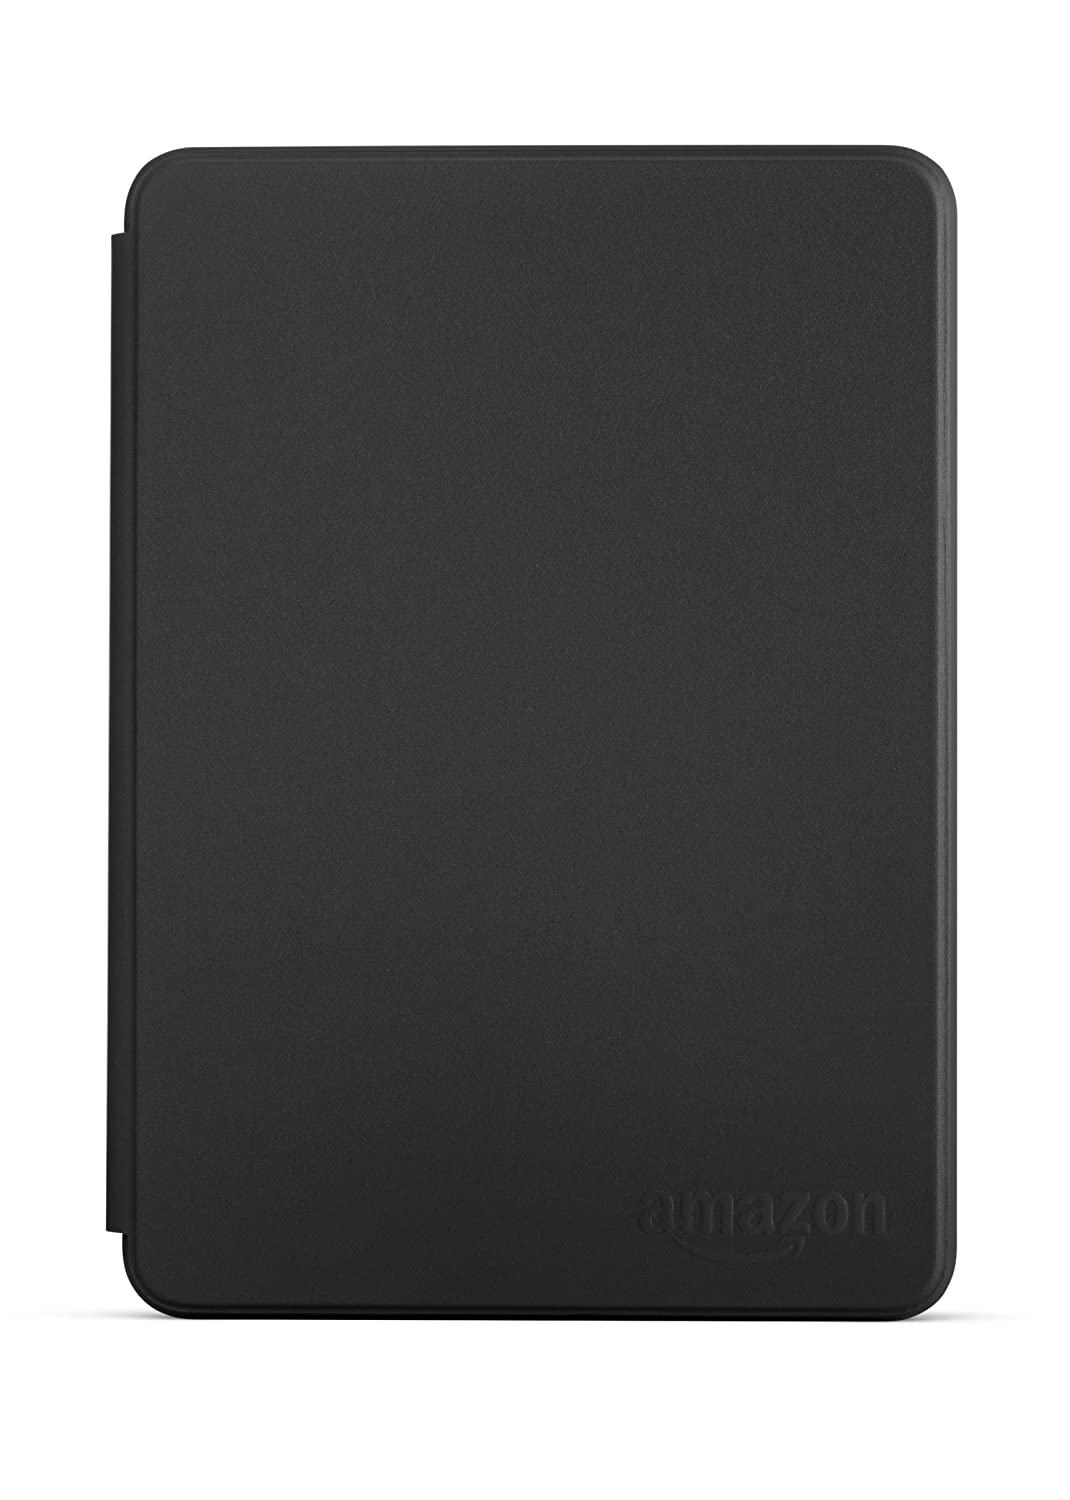 will not fit previous generation Kindle devices Protective Cover for Kindle 7th Generation Citron